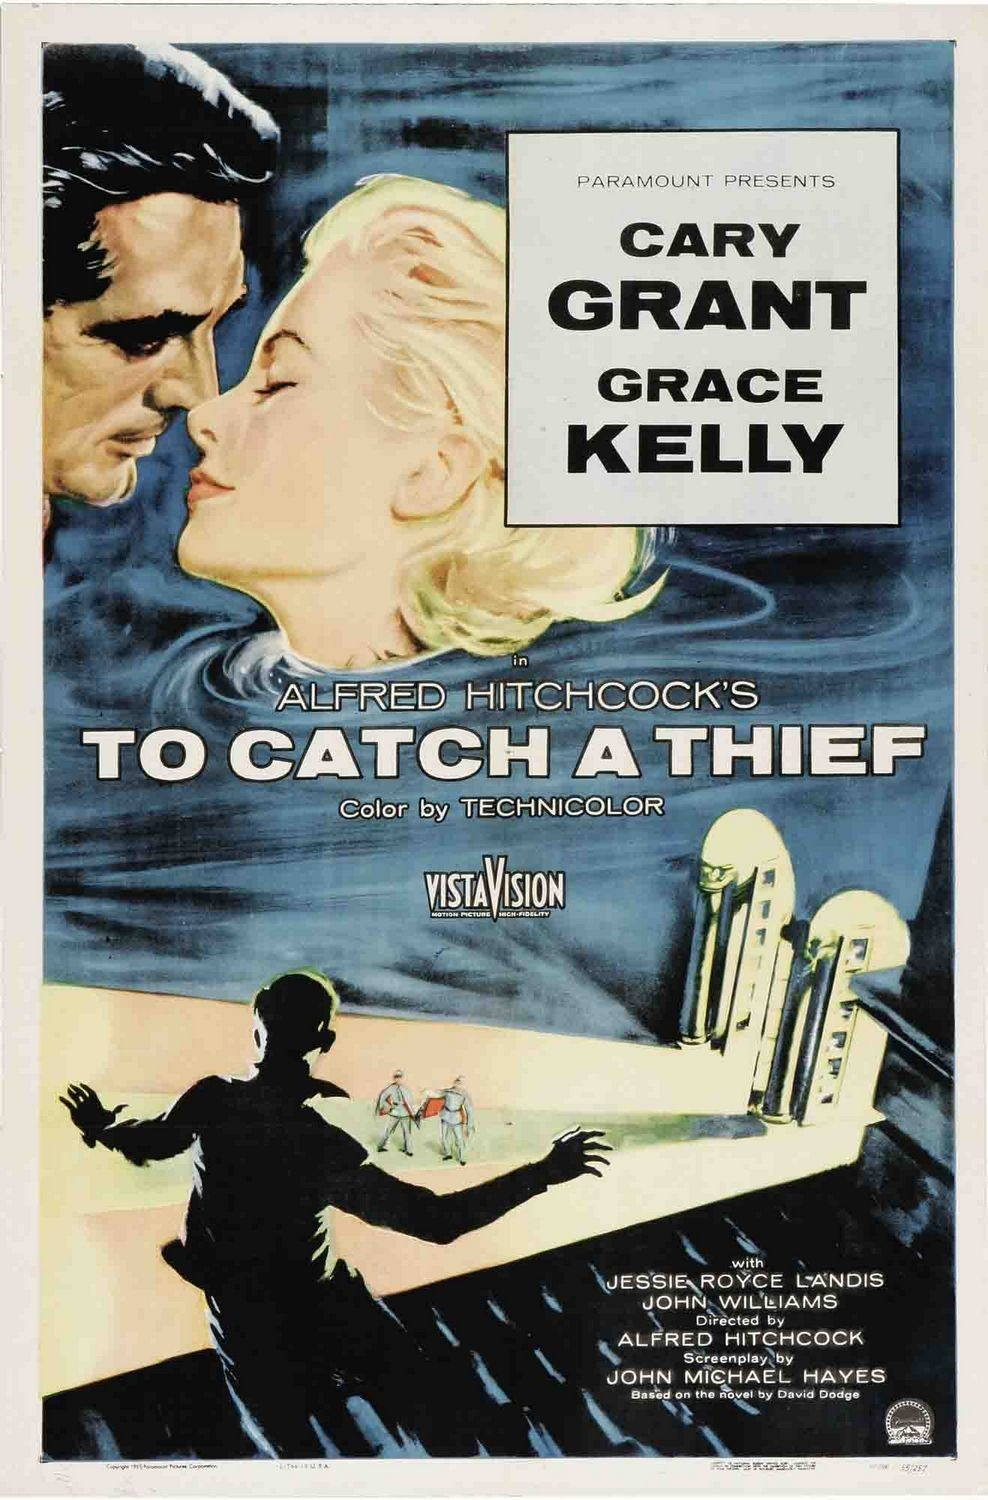 To Catch A Thief (1955) - Directed by: Alfred HitchcockStarring: Cary Grant, Grace Kelly, Jessie Royce LandisRated: PGRunning Time: 1h 46mTMM Score: 2 Stars (didn't like it)STRENGTHS: ProductionWEAKNESSES: Lack of Suspense